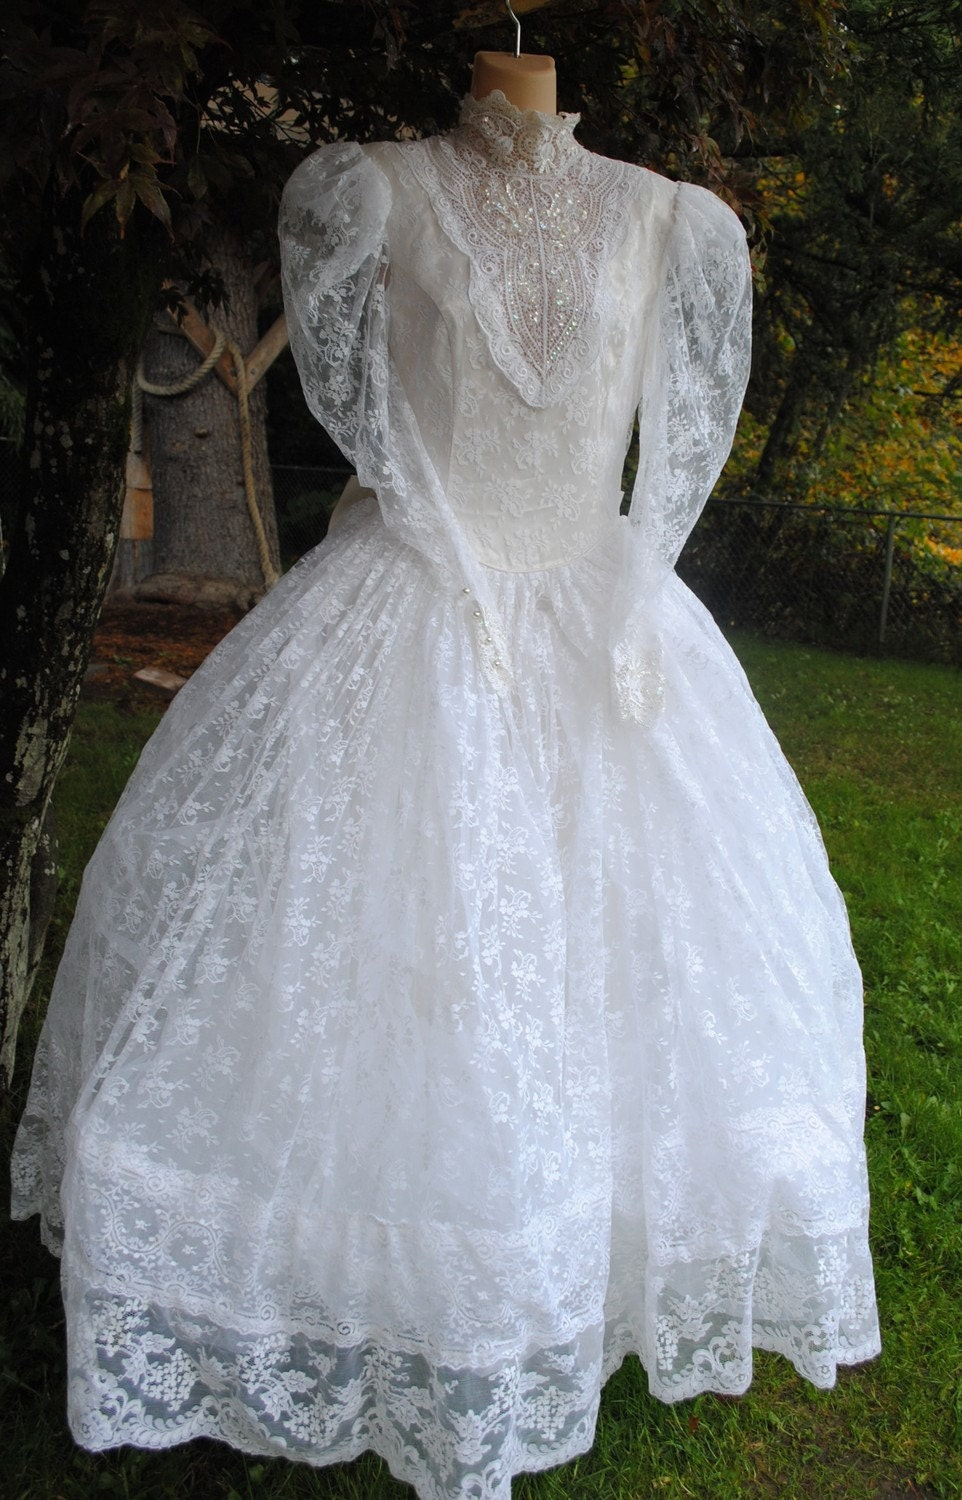 Perfect poof jessica mcclintock 80s wedding dress by for Jessica mcclintock wedding dresses outlet